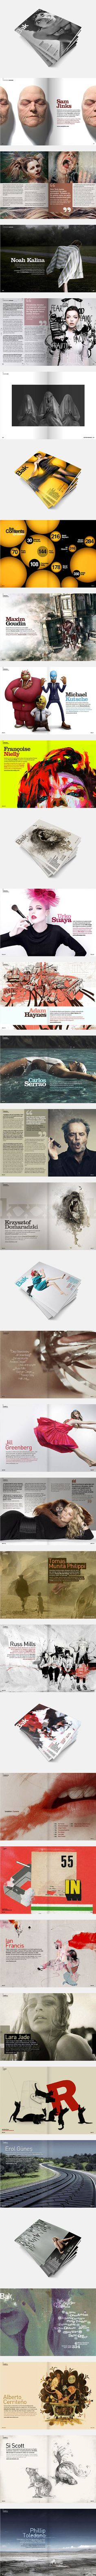 Lots of cool ideas in this one; was looking for pull-quote ideas specifically Bak Magazine on Behance